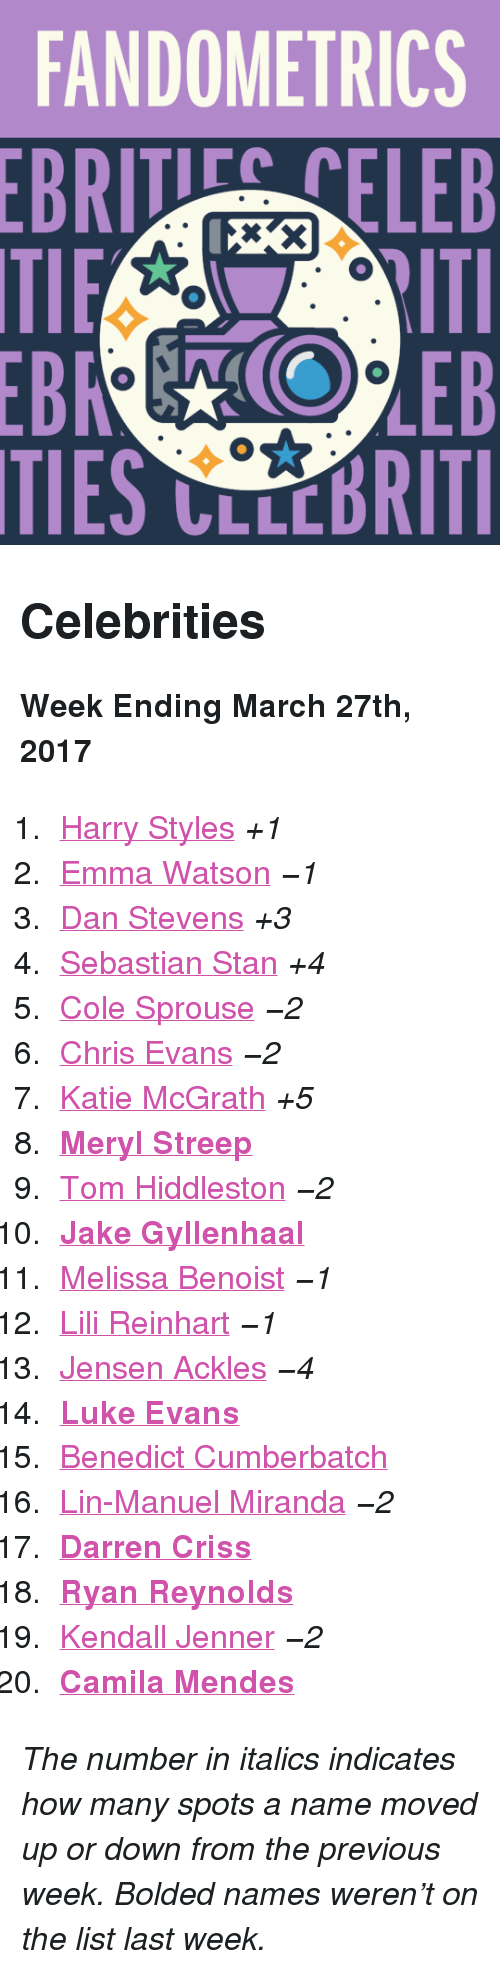 """gyllenhaal: FANDOMETRICS  BRTELEB  TIES CLLCBRITI <h2>Celebrities</h2><p><b>Week Ending March 27th, 2017</b></p><ol><li><a href=""""http://www.tumblr.com/search/harry%20styles"""">Harry Styles</a><i>+1</i></li>  <li><a href=""""http://www.tumblr.com/search/emma%20watson"""">Emma Watson</a><i>−1</i></li>  <li><a href=""""http://www.tumblr.com/search/dan%20stevens"""">Dan Stevens</a><i>+3</i></li>  <li><a href=""""http://www.tumblr.com/search/sebastian%20stan"""">Sebastian Stan</a><i>+4</i></li>  <li><a href=""""http://www.tumblr.com/search/cole%20sprouse"""">Cole Sprouse</a><i>−2</i></li>  <li><a href=""""http://www.tumblr.com/search/chris%20evans"""">Chris Evans</a><i>−2</i></li>  <li><a href=""""http://www.tumblr.com/search/katie%20mcgrath"""">Katie McGrath</a><i>+5</i></li>  <li><a href=""""http://www.tumblr.com/search/meryl%20streep""""><b>Meryl Streep</b></a></li>  <li><a href=""""http://www.tumblr.com/search/tom%20hiddleston"""">Tom Hiddleston</a><i>−2</i></li>  <li><a href=""""http://www.tumblr.com/search/jake%20gyllenhaal""""><b>Jake Gyllenhaal</b></a></li>  <li><a href=""""http://www.tumblr.com/search/melissa%20benoist"""">Melissa Benoist</a><i>−1</i></li>  <li><a href=""""http://www.tumblr.com/search/lili%20reinhart"""">Lili Reinhart</a><i>−1</i></li>  <li><a href=""""http://www.tumblr.com/search/jensen%20ackles"""">Jensen Ackles</a><i>−4</i></li>  <li><a href=""""http://www.tumblr.com/search/luke%20evans""""><b>Luke Evans</b></a></li>  <li><a href=""""http://www.tumblr.com/search/benedict%20cumberbatch"""">Benedict Cumberbatch</a></li>  <li><a href=""""http://www.tumblr.com/search/lin%20manuel%20miranda"""">Lin-Manuel Miranda</a><i>−2</i></li>  <li><a href=""""http://www.tumblr.com/search/darren%20criss""""><b>Darren Criss</b></a></li>  <li><a href=""""http://www.tumblr.com/search/ryan%20reynolds""""><b>Ryan Reynolds</b></a></li>  <li><a href=""""http://www.tumblr.com/search/kendall%20jenner"""">Kendall Jenner</a><i>−2</i></li>  <li><a href=""""http://www.tumblr.com/search/camila%20mendes""""><b>Camila Mendes</b></a></li></ol><p><i>The number in italics indicates how many s"""